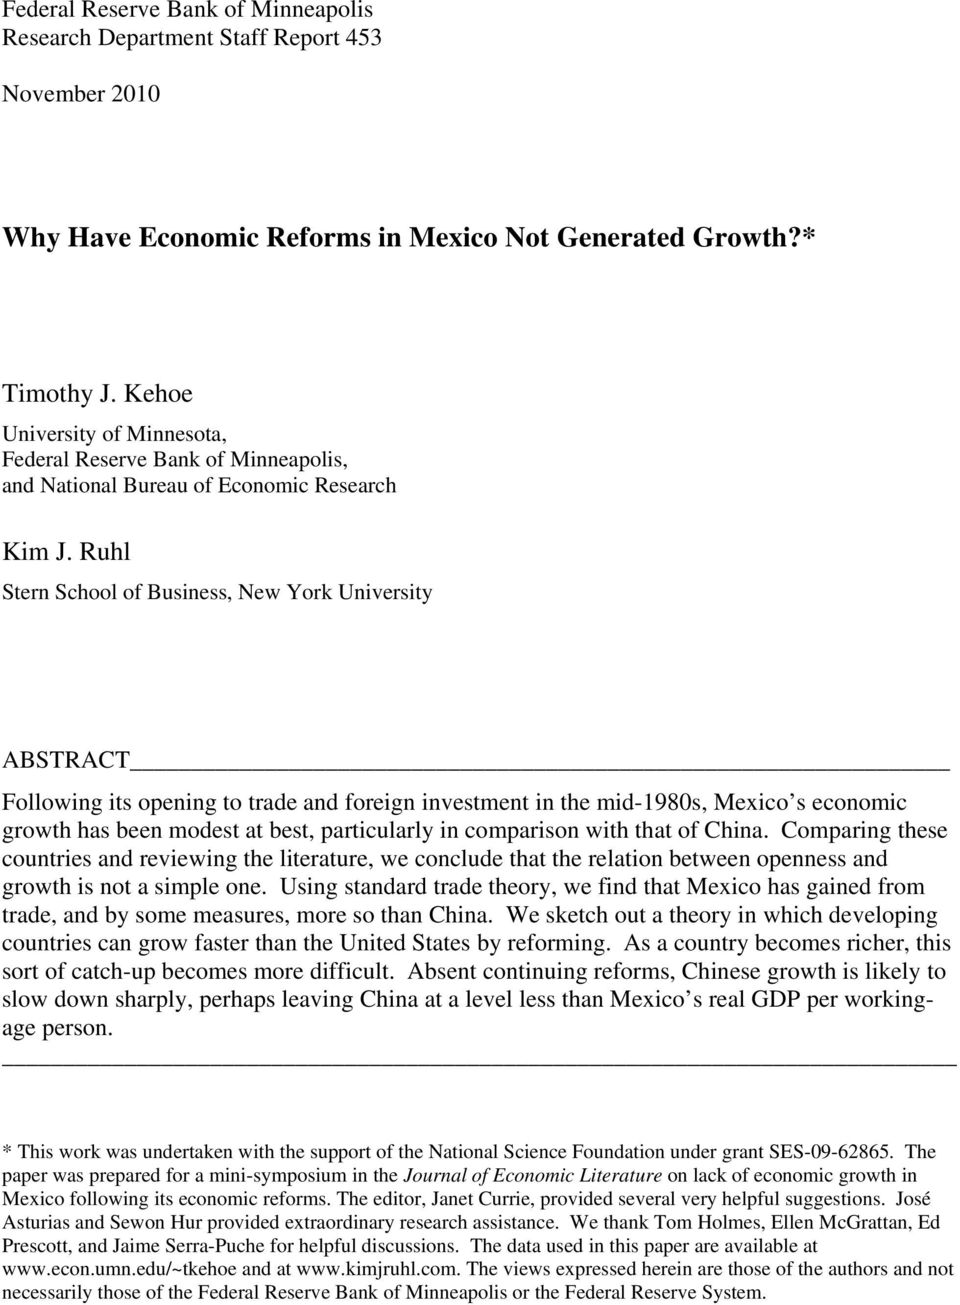 Ruhl Sern School of Business, New York Universiy ABSTRACT Following is opening o rade and foreign invesmen in he mid-1980s, Mexico s economic growh has been modes a bes, paricularly in comparison wih